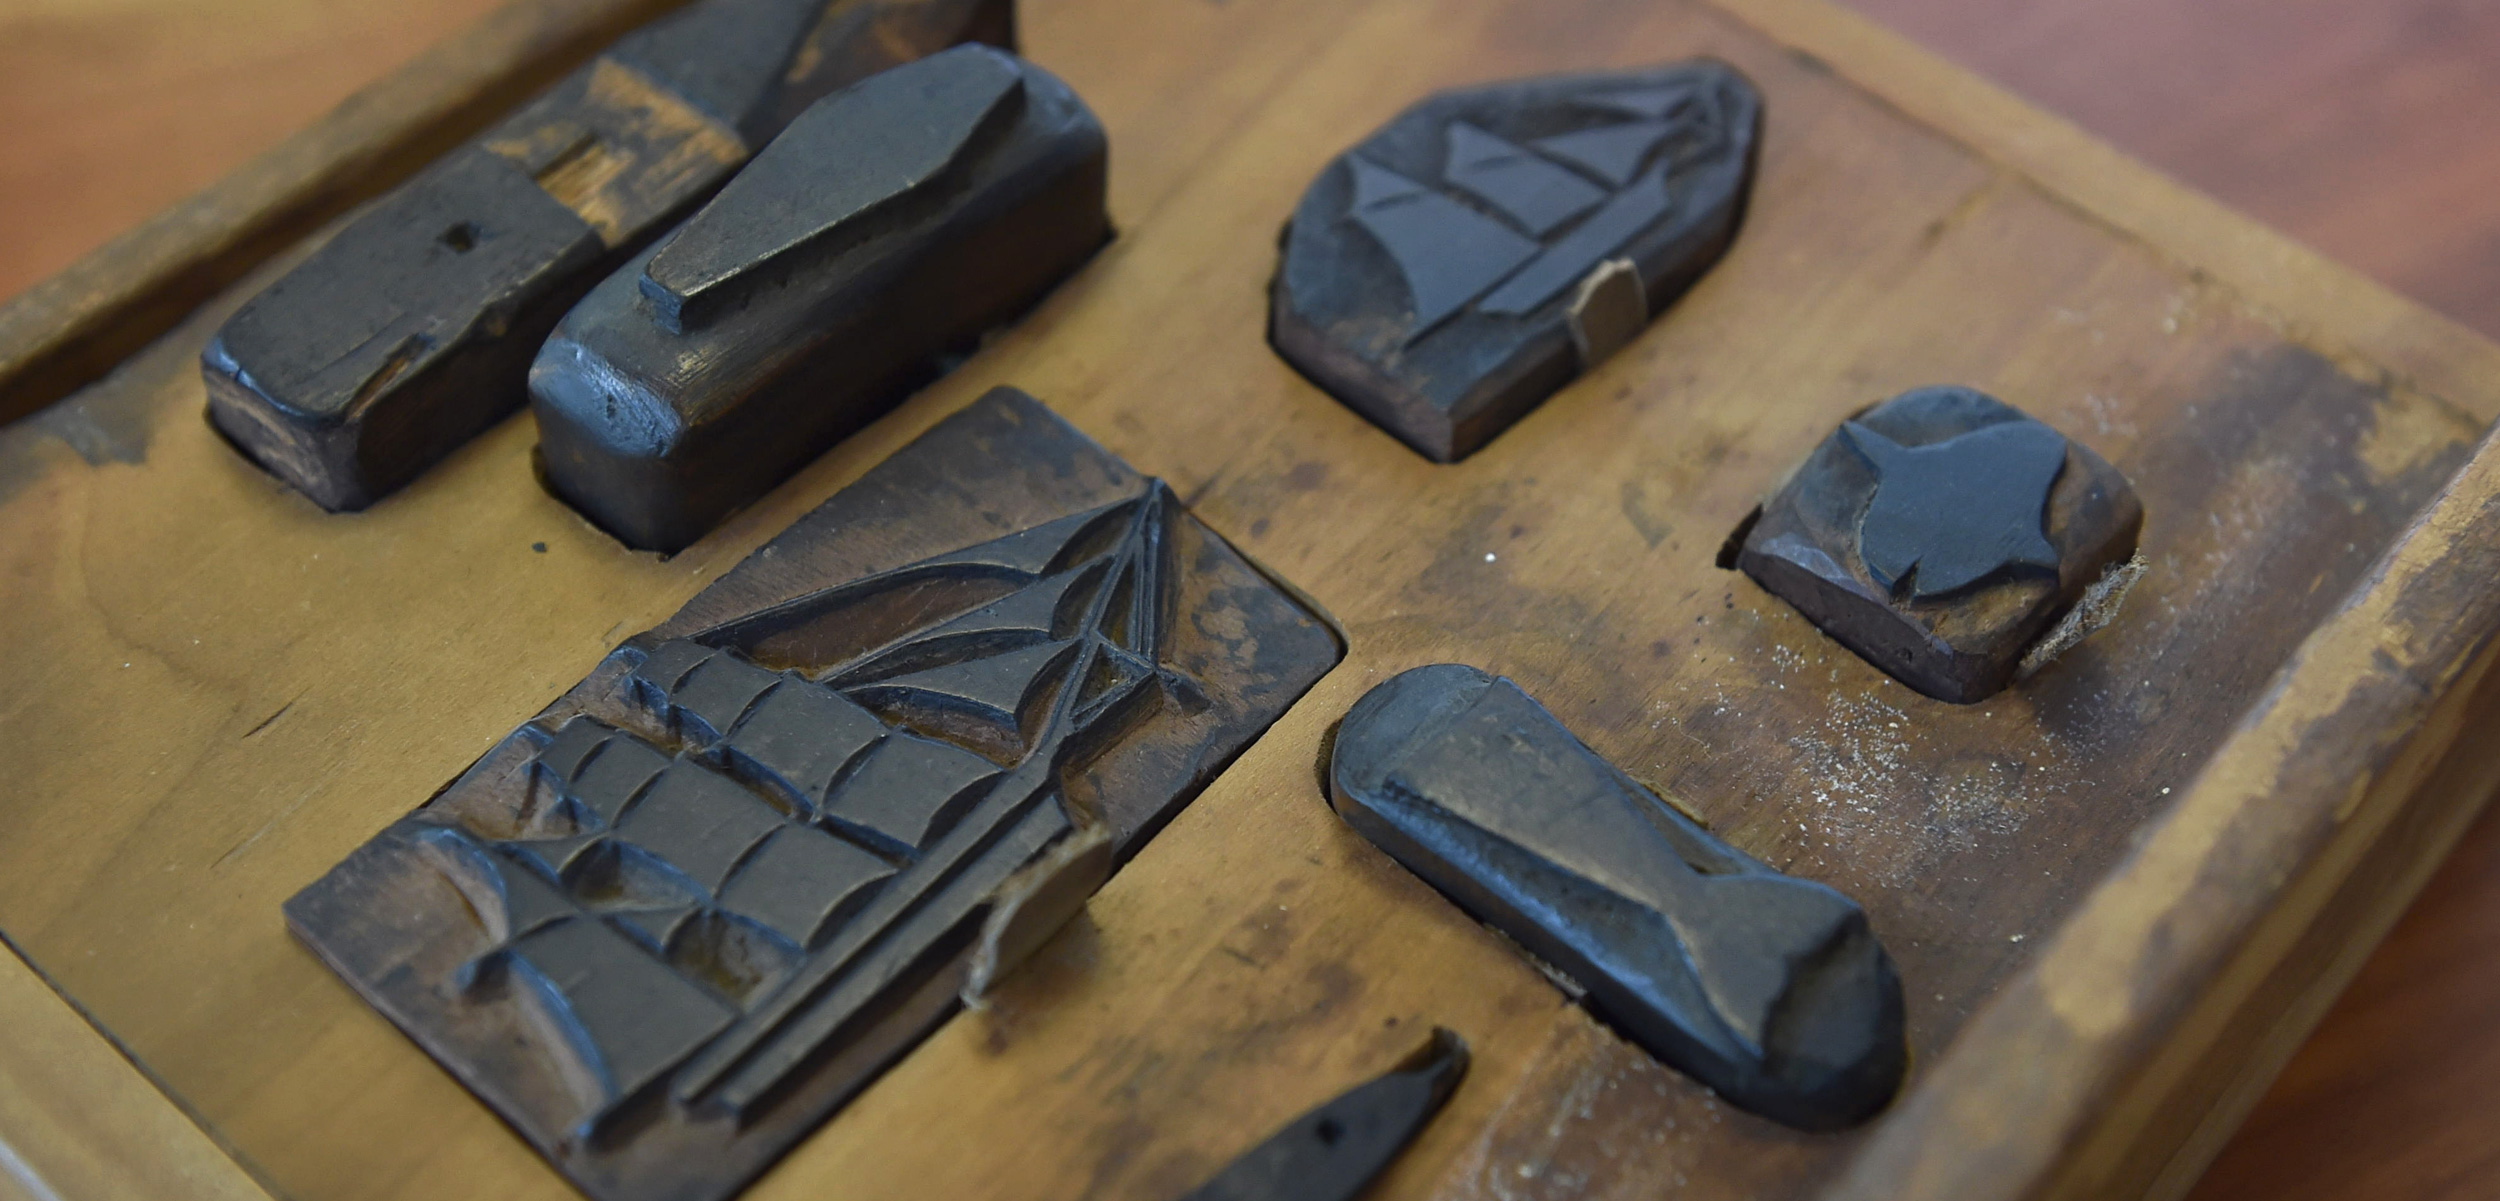 This collection of seven stamps is one of the most elaborate examples of carved stamps used by 19th-century whalers to record details of their voyage. The set includes a whale, a three-masted bark, a schooner, a whale's flukes, an unidentified cetacean, a sunfish, and a coffin. Photo by Nelson Mare